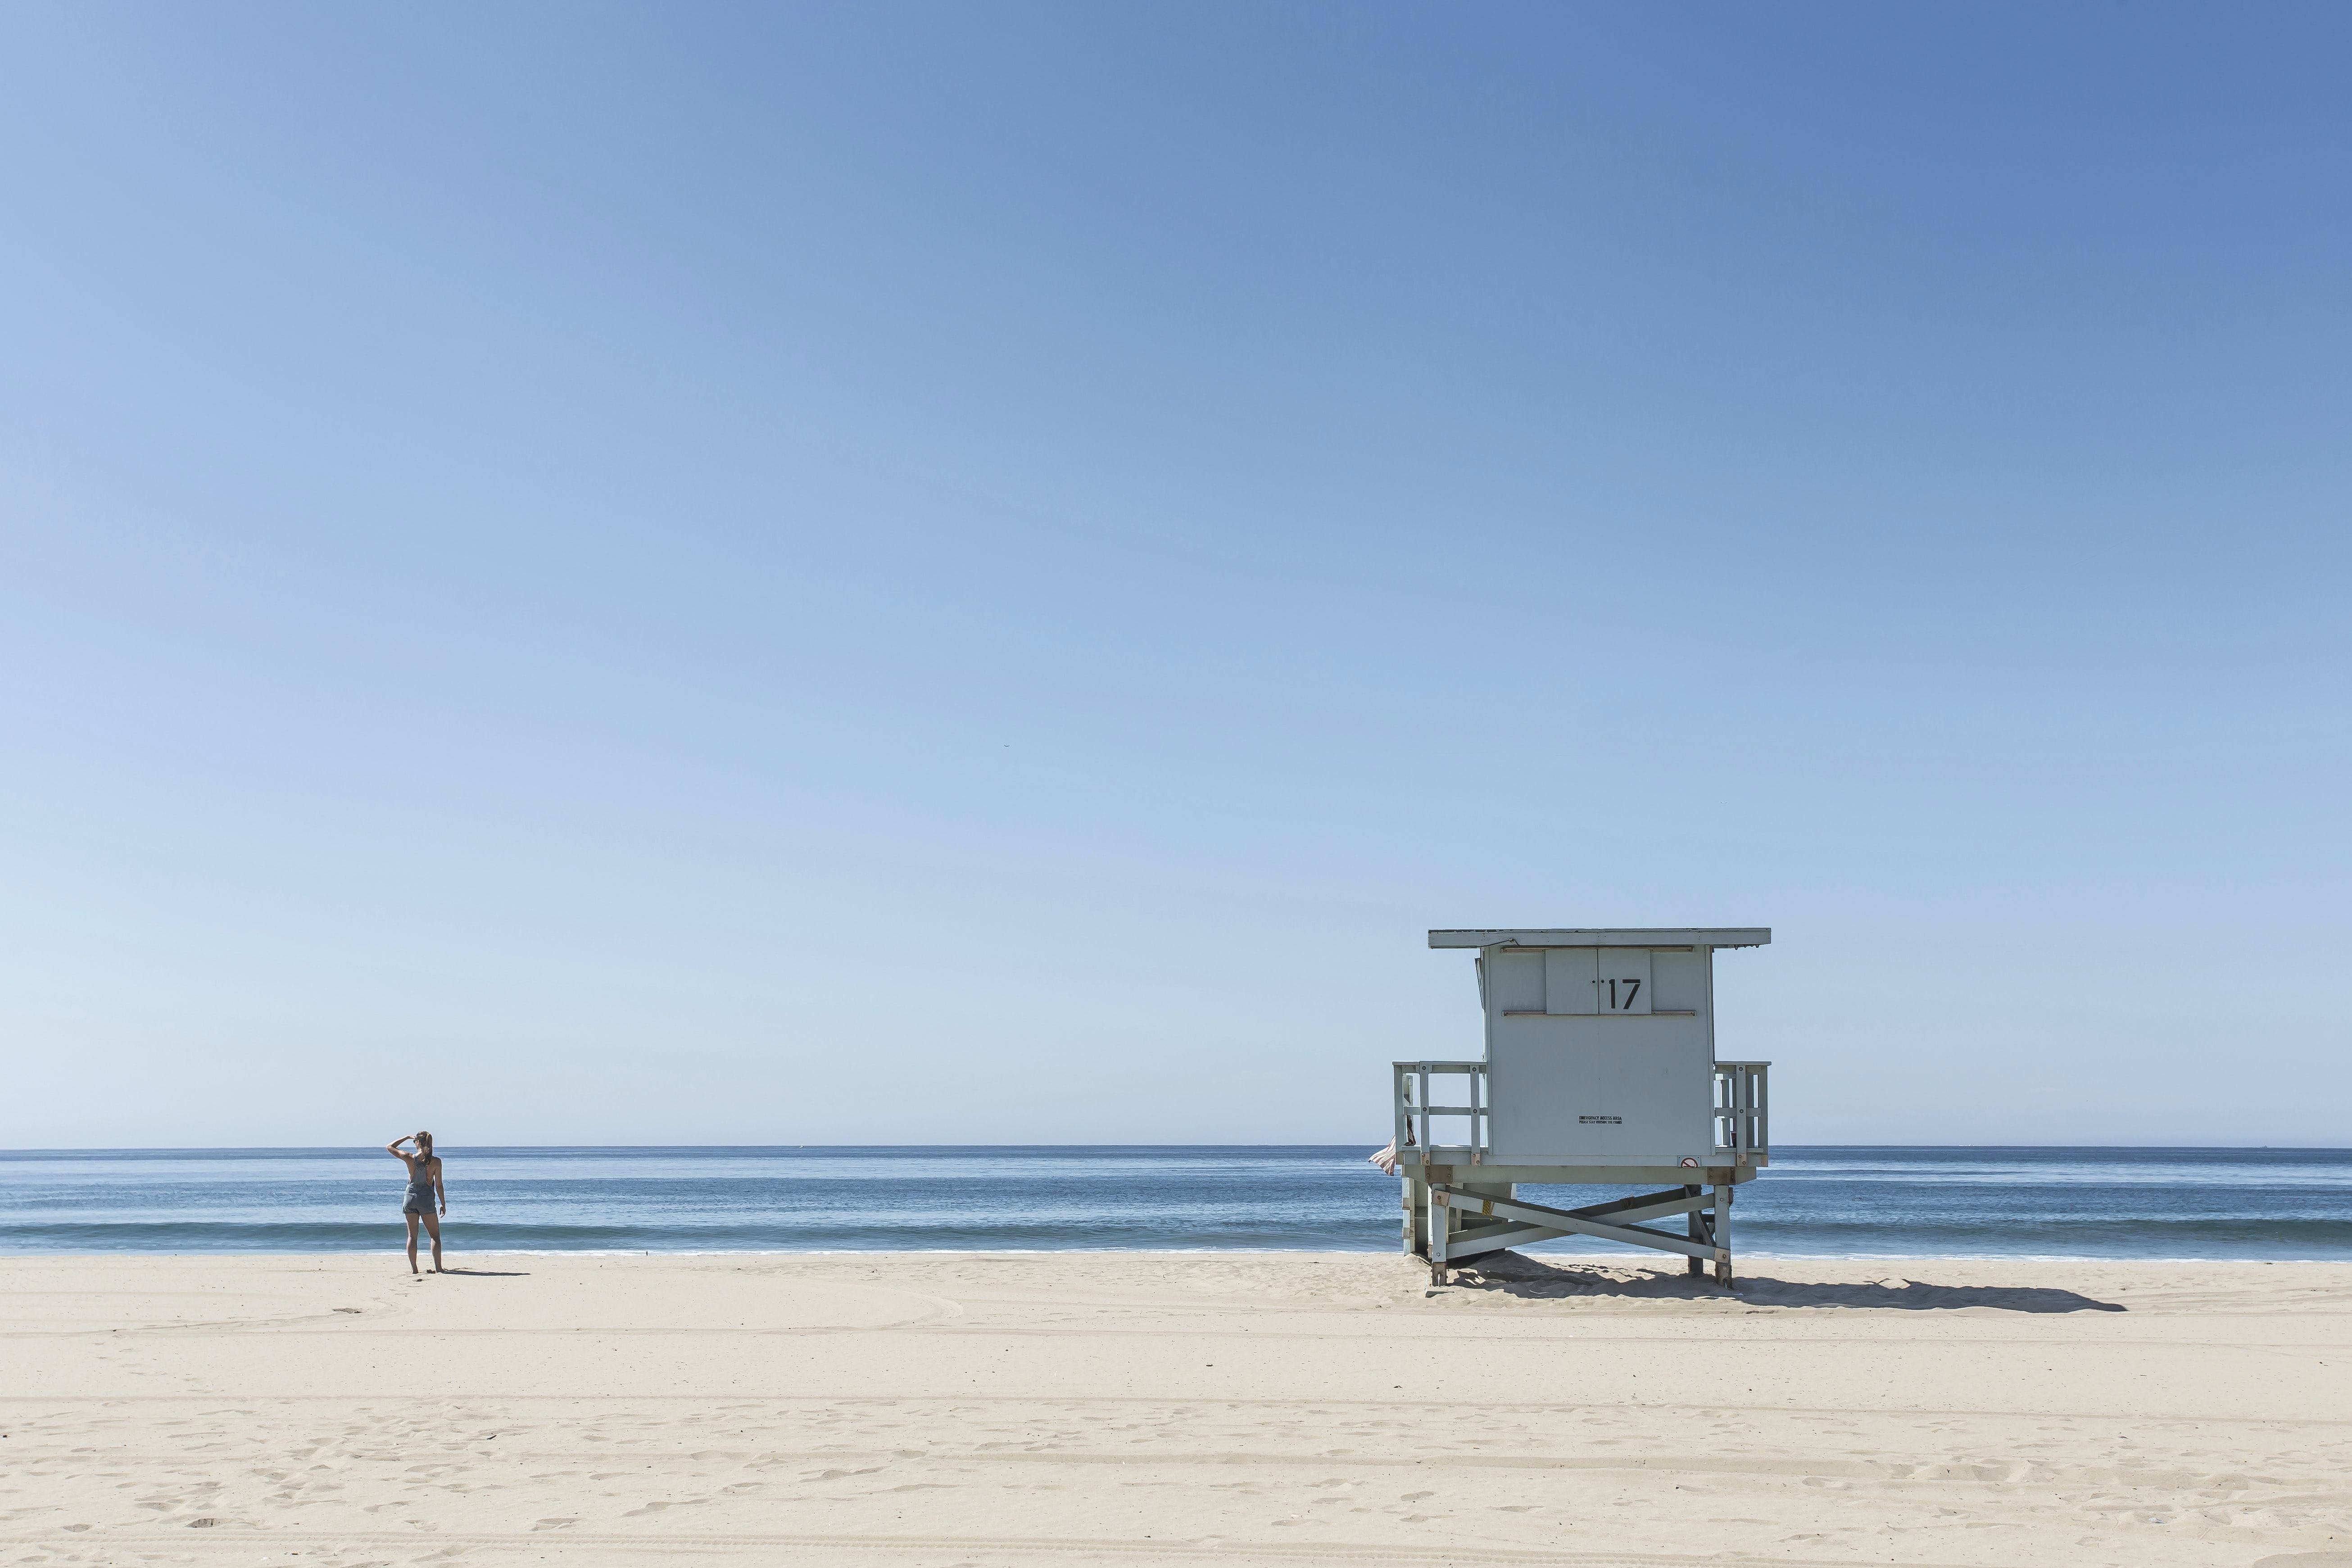 Lifeguard stand in tranquil beach photo of ocean and shoreline in a summer day